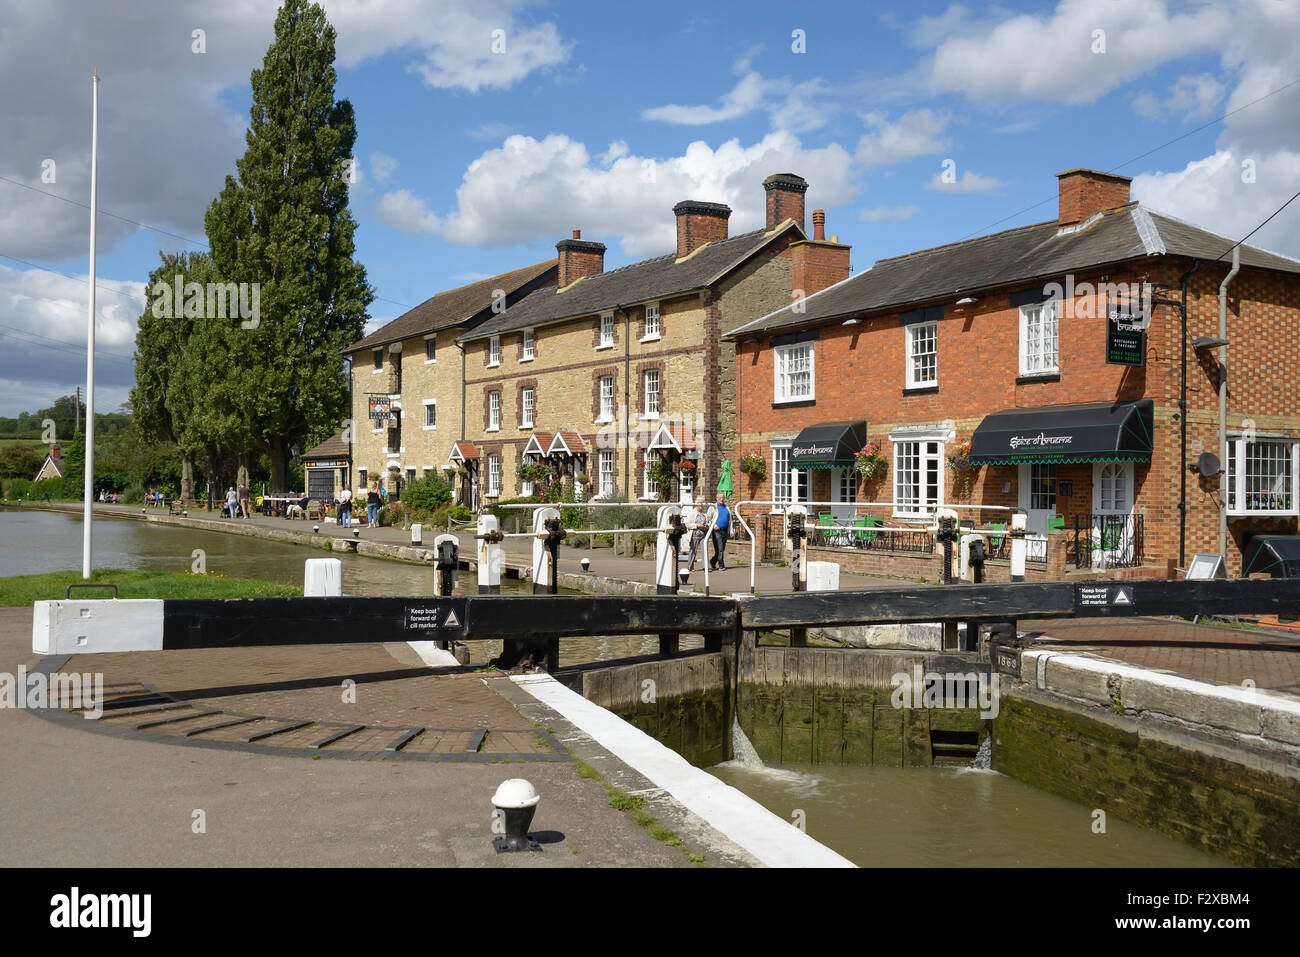 The top lock of the Stoke Bruerne flight, Stoke Bruerne, Northamptonshire, England, United Kingdom - Stock Image